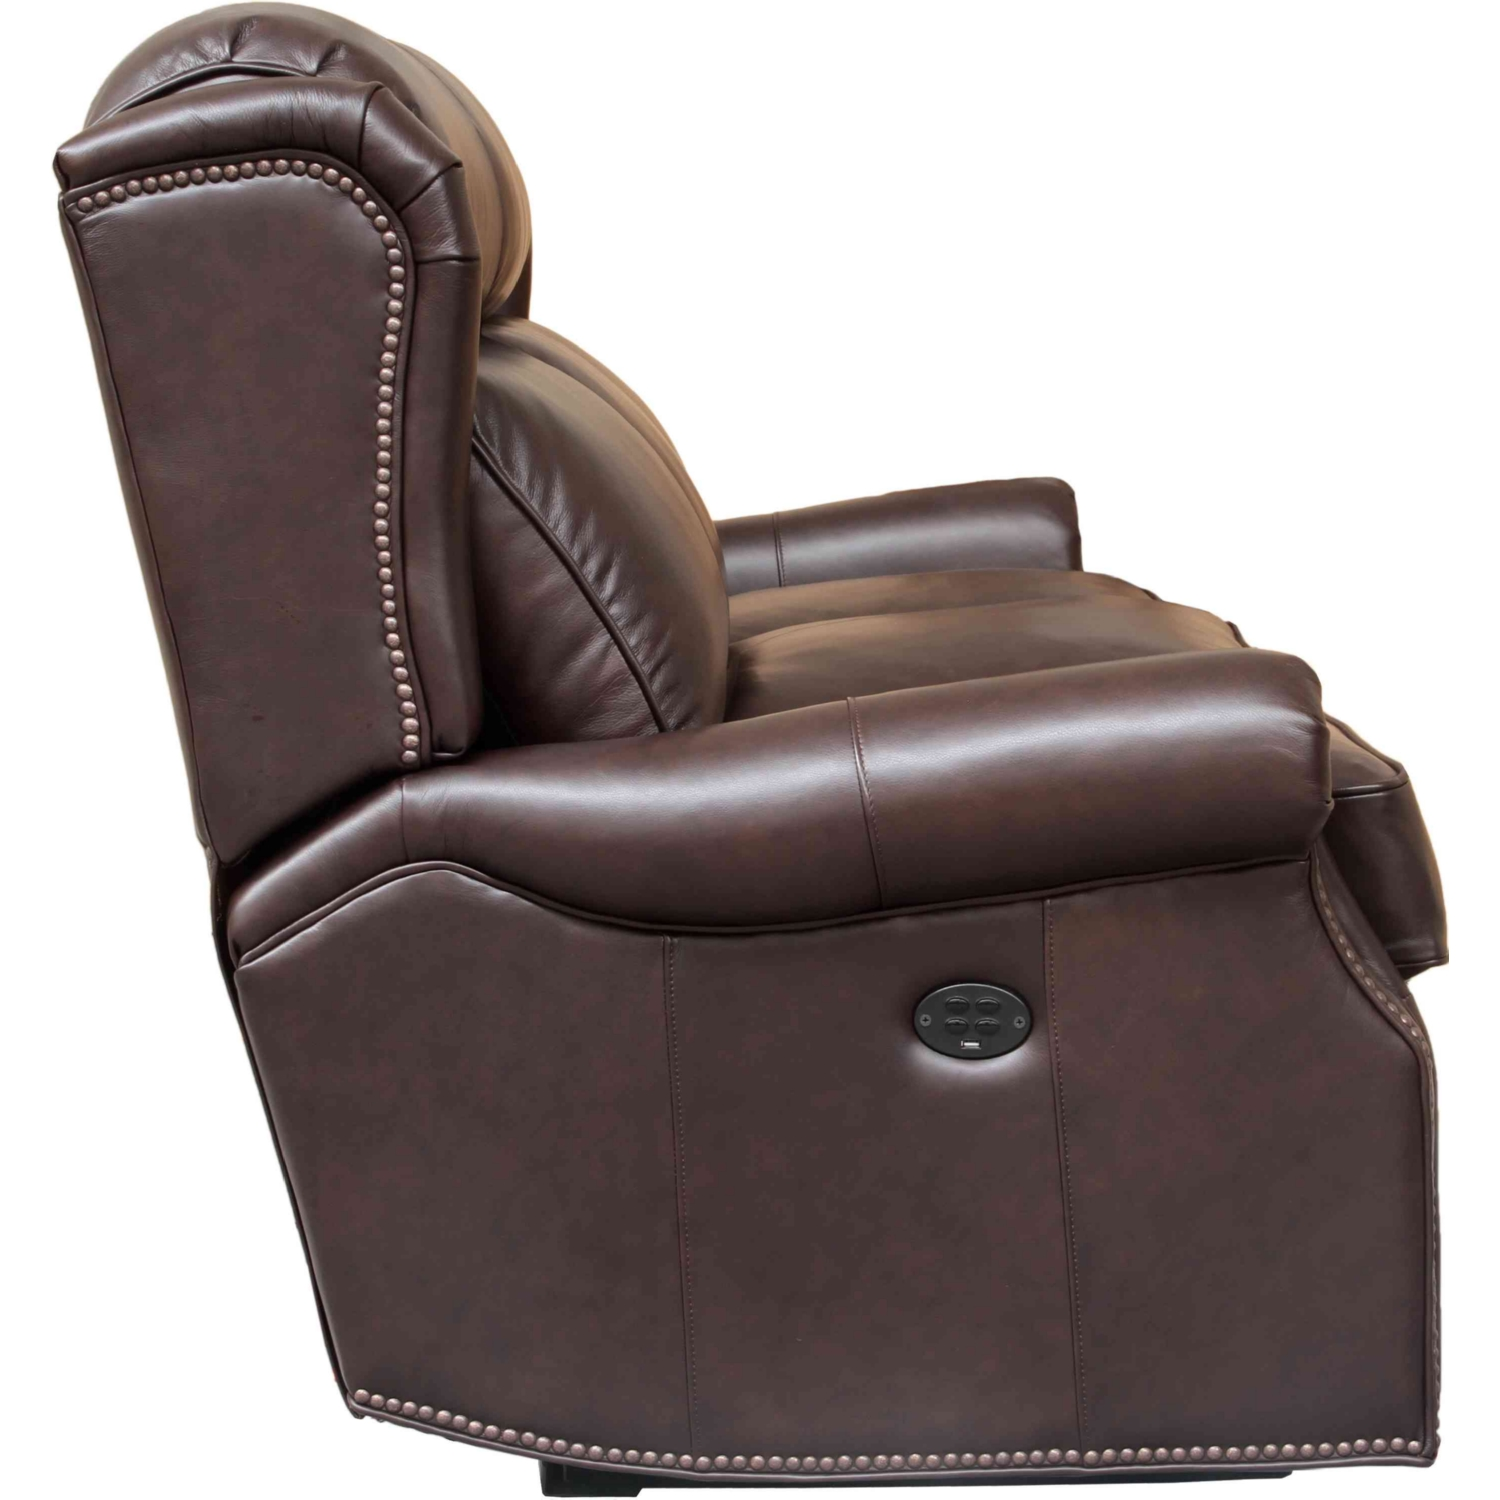 Southington Power Reclining Sofa w/ Power Headrests in Shoreham Dark Umber Leather  sc 1 st  Dynamic Home Decor & BarcaLounger 39PH-3183-5700-88 Southington Power Reclining Sofa w ... islam-shia.org